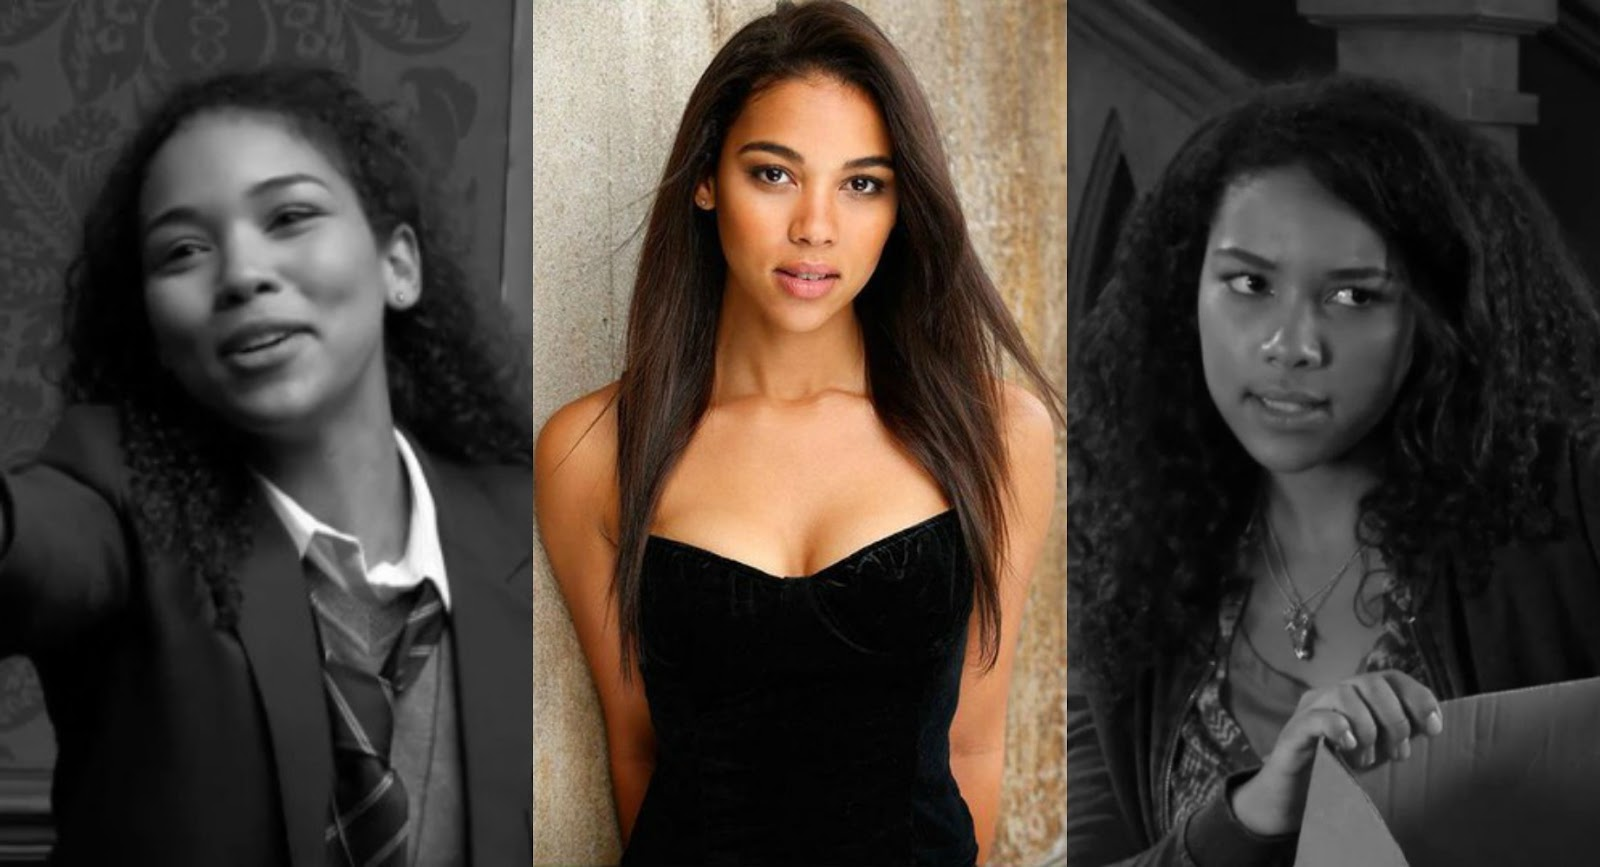 Marvelous Probably The Most Talked About Actress From All Of The House Of Anubis  Cast, Alexandra Surely Is Enjoying And Using Her Chance To Shine And Become  ...